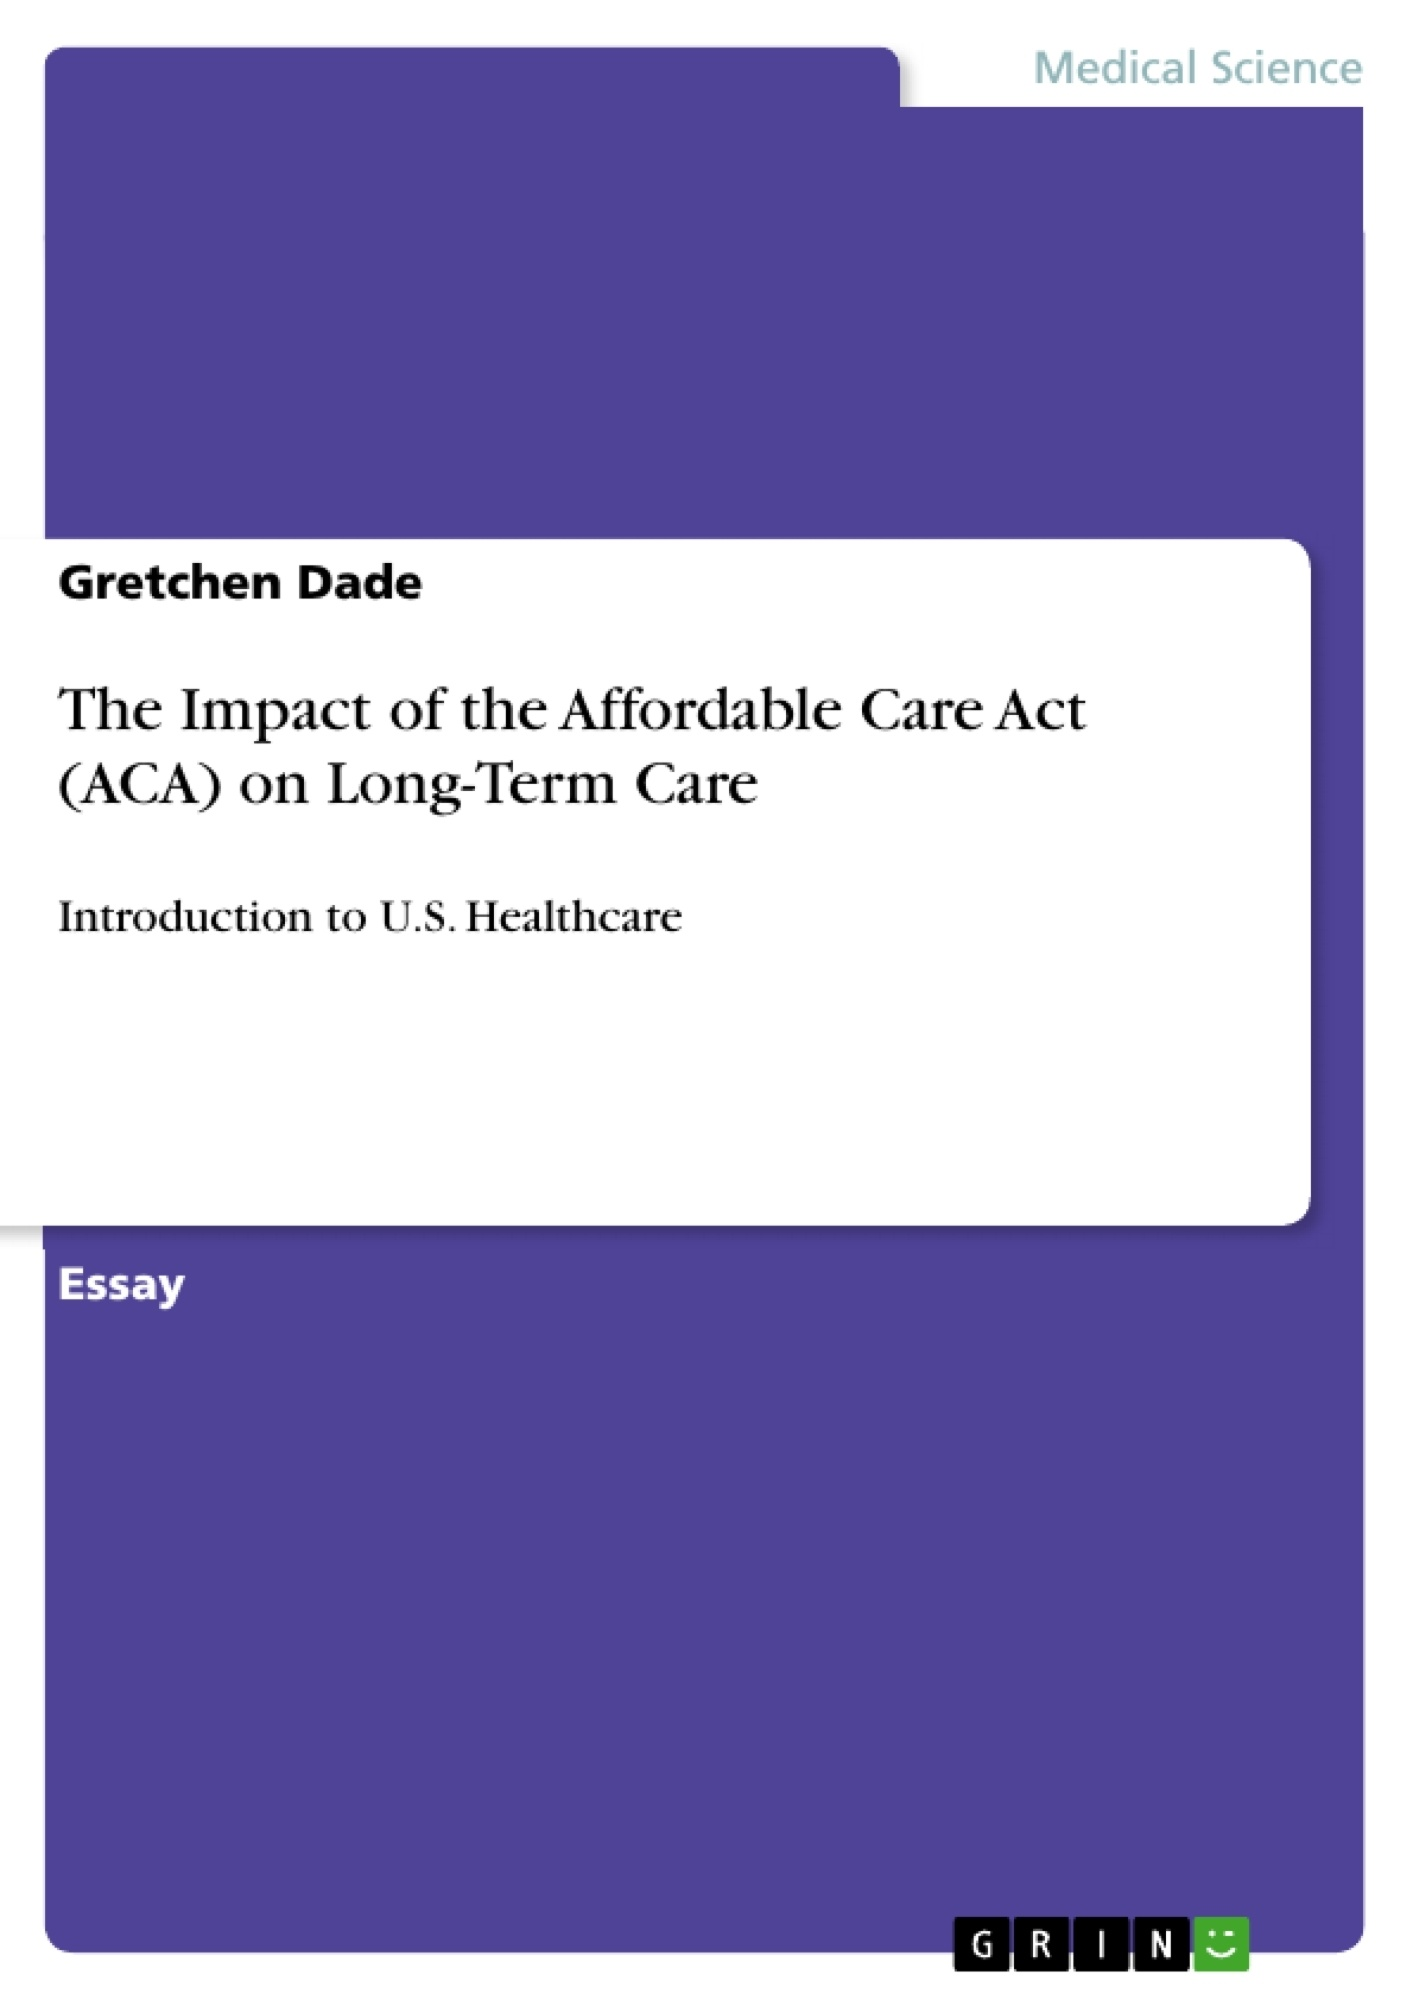 Thesis on long term care